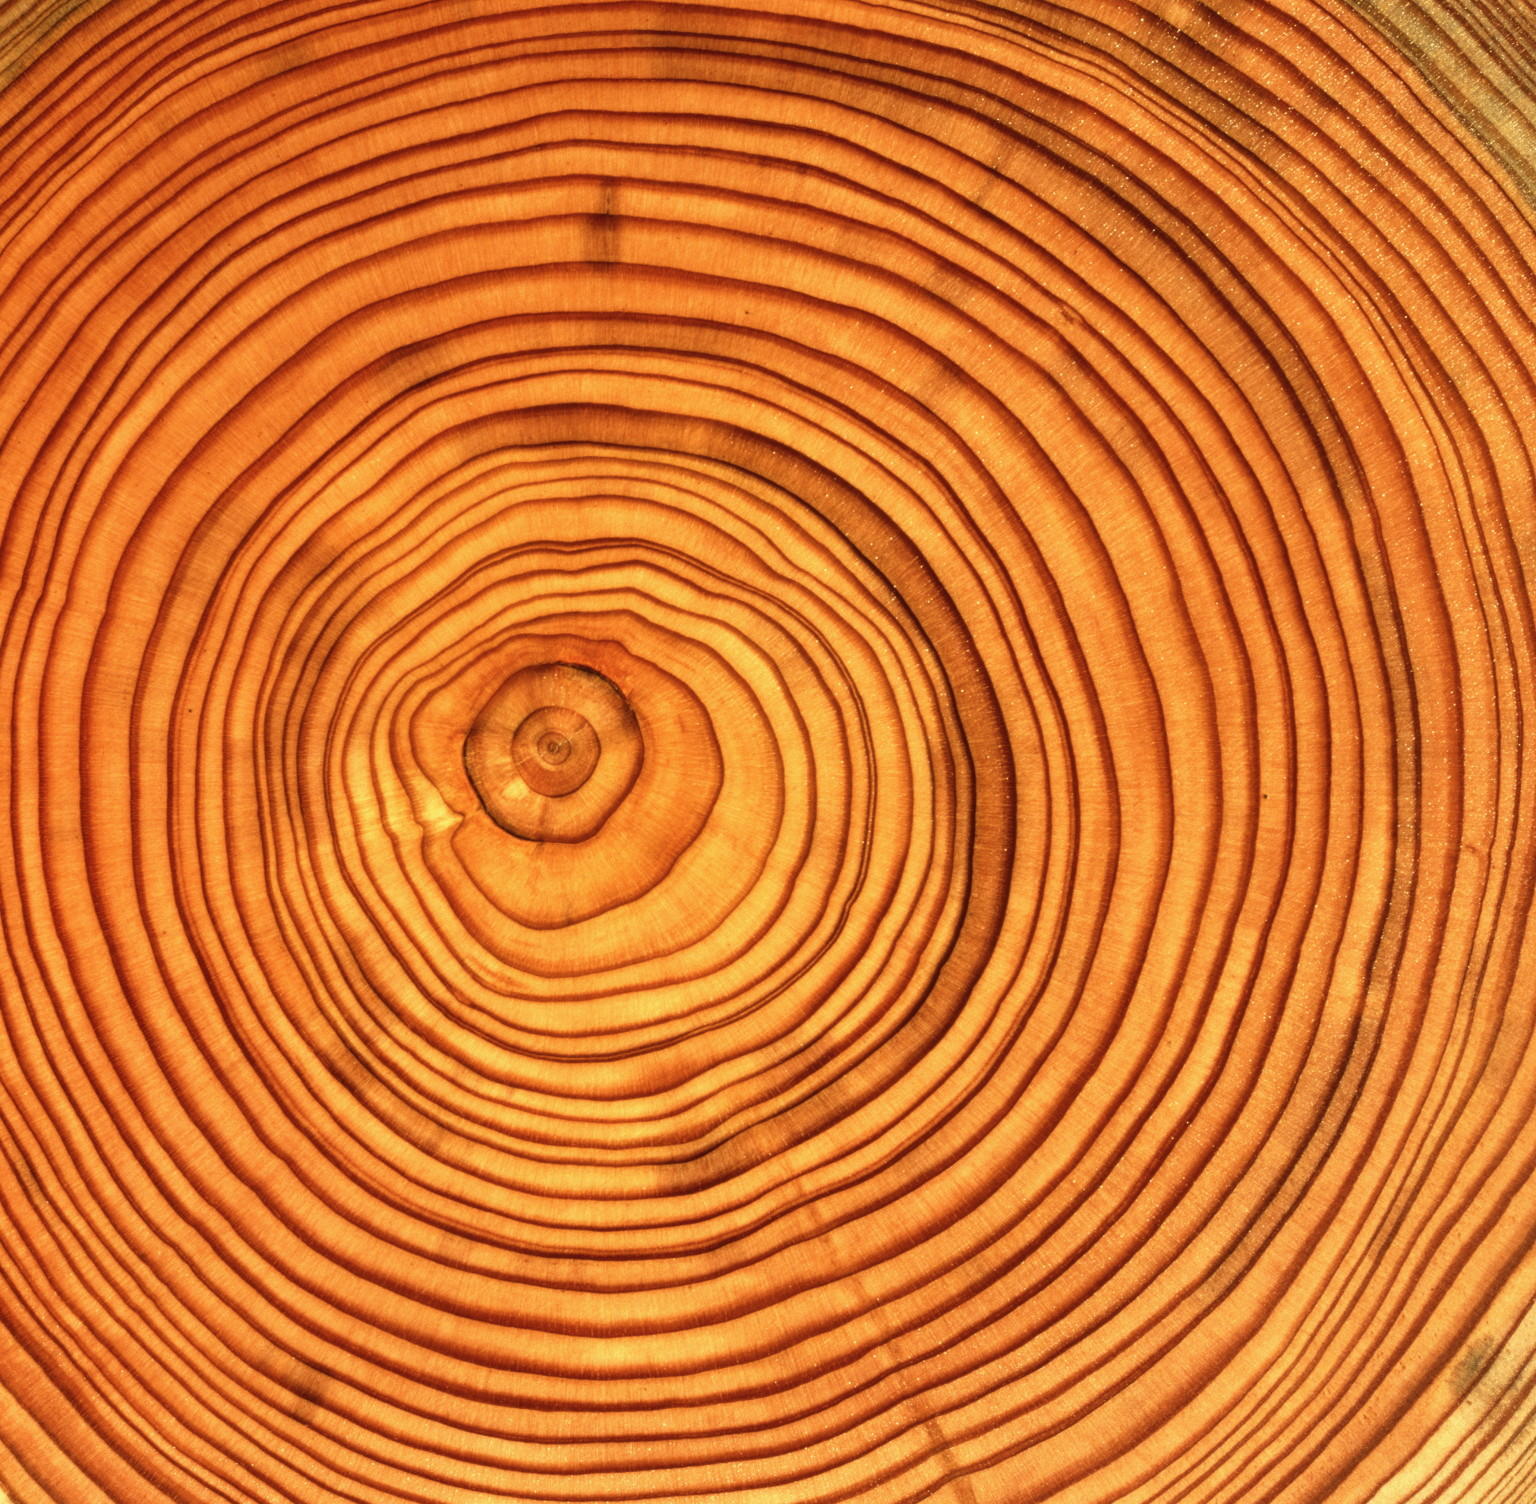 Tree trunk, cross section showing annual growth rings, full frame